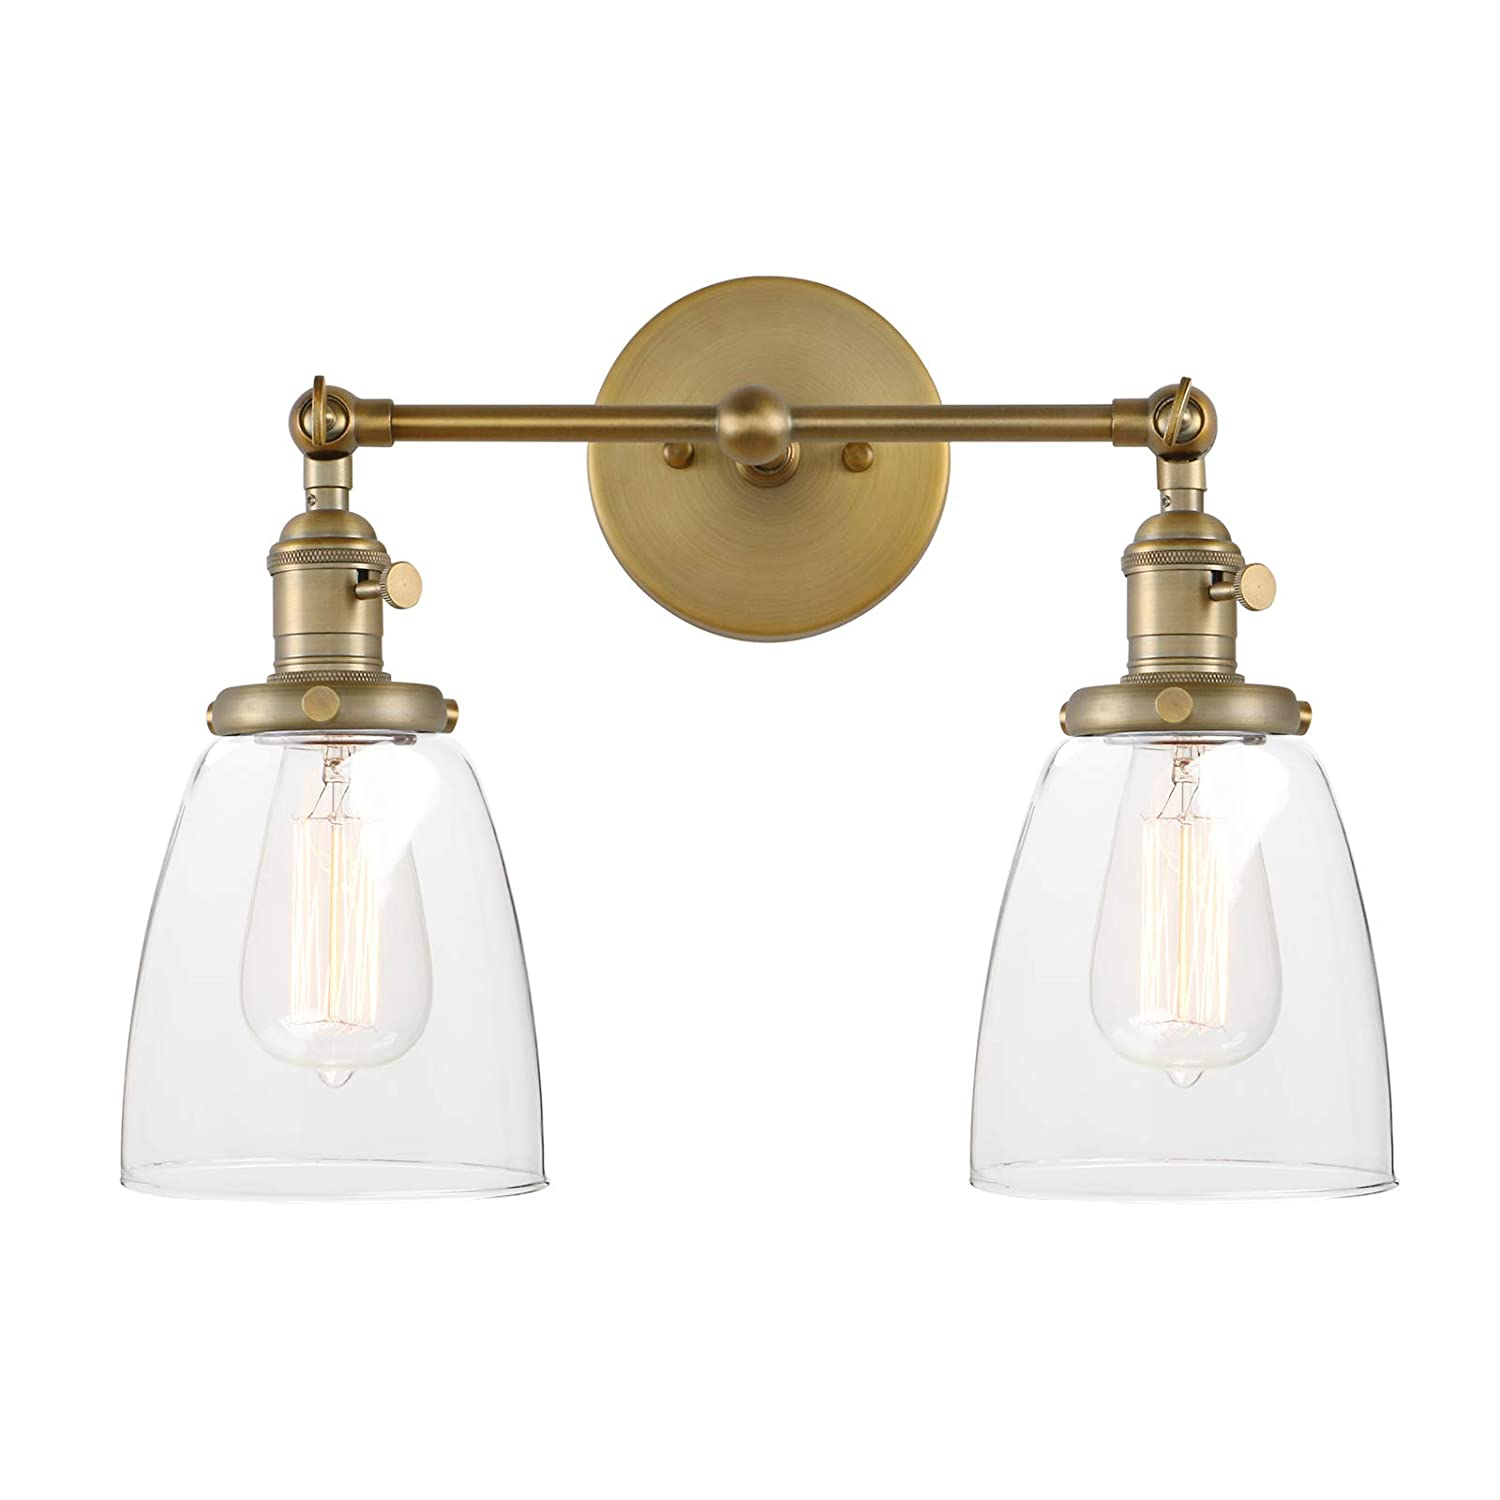 Pathson 2 light wall sconce vintage style industrial bathroom lighting fixtures with oval cone clear glass shade dark steel finished antique amazon